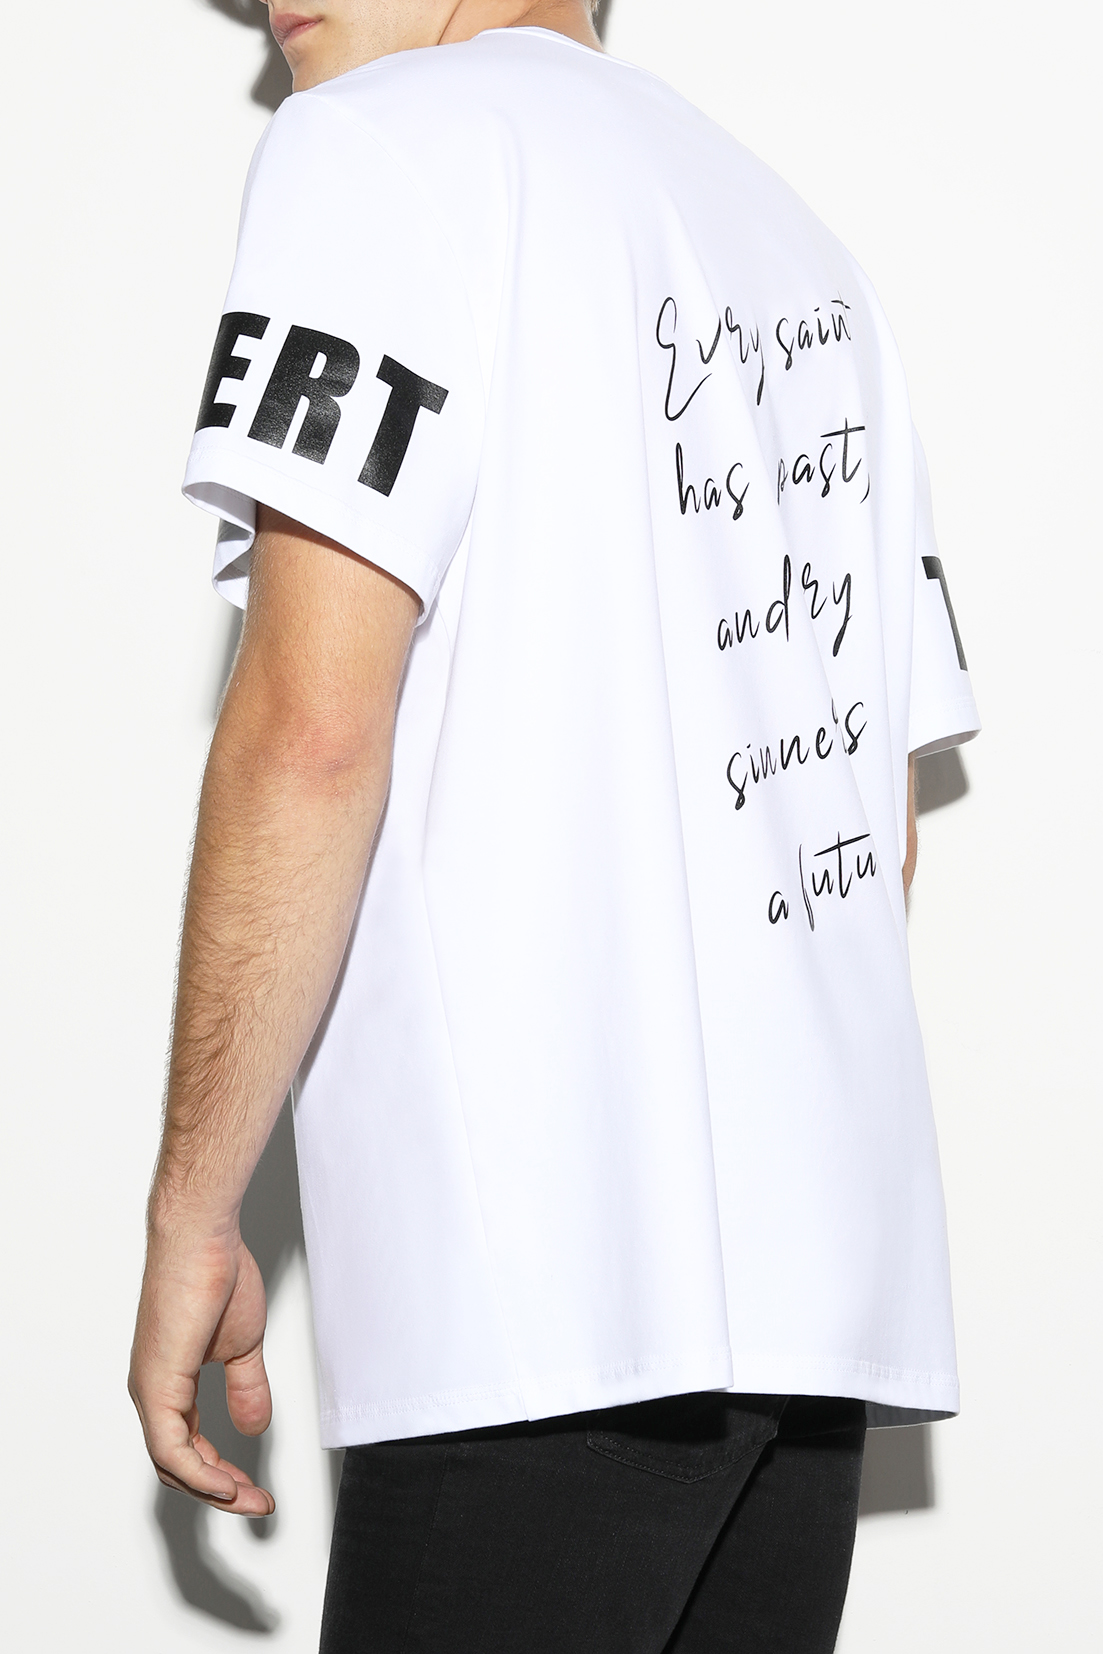 T-shirt for women and men by designer Stefan Eckert, made of organic cotton, sustainably produced in Germany, design Every Saint has a past, and every sinner has a future-2